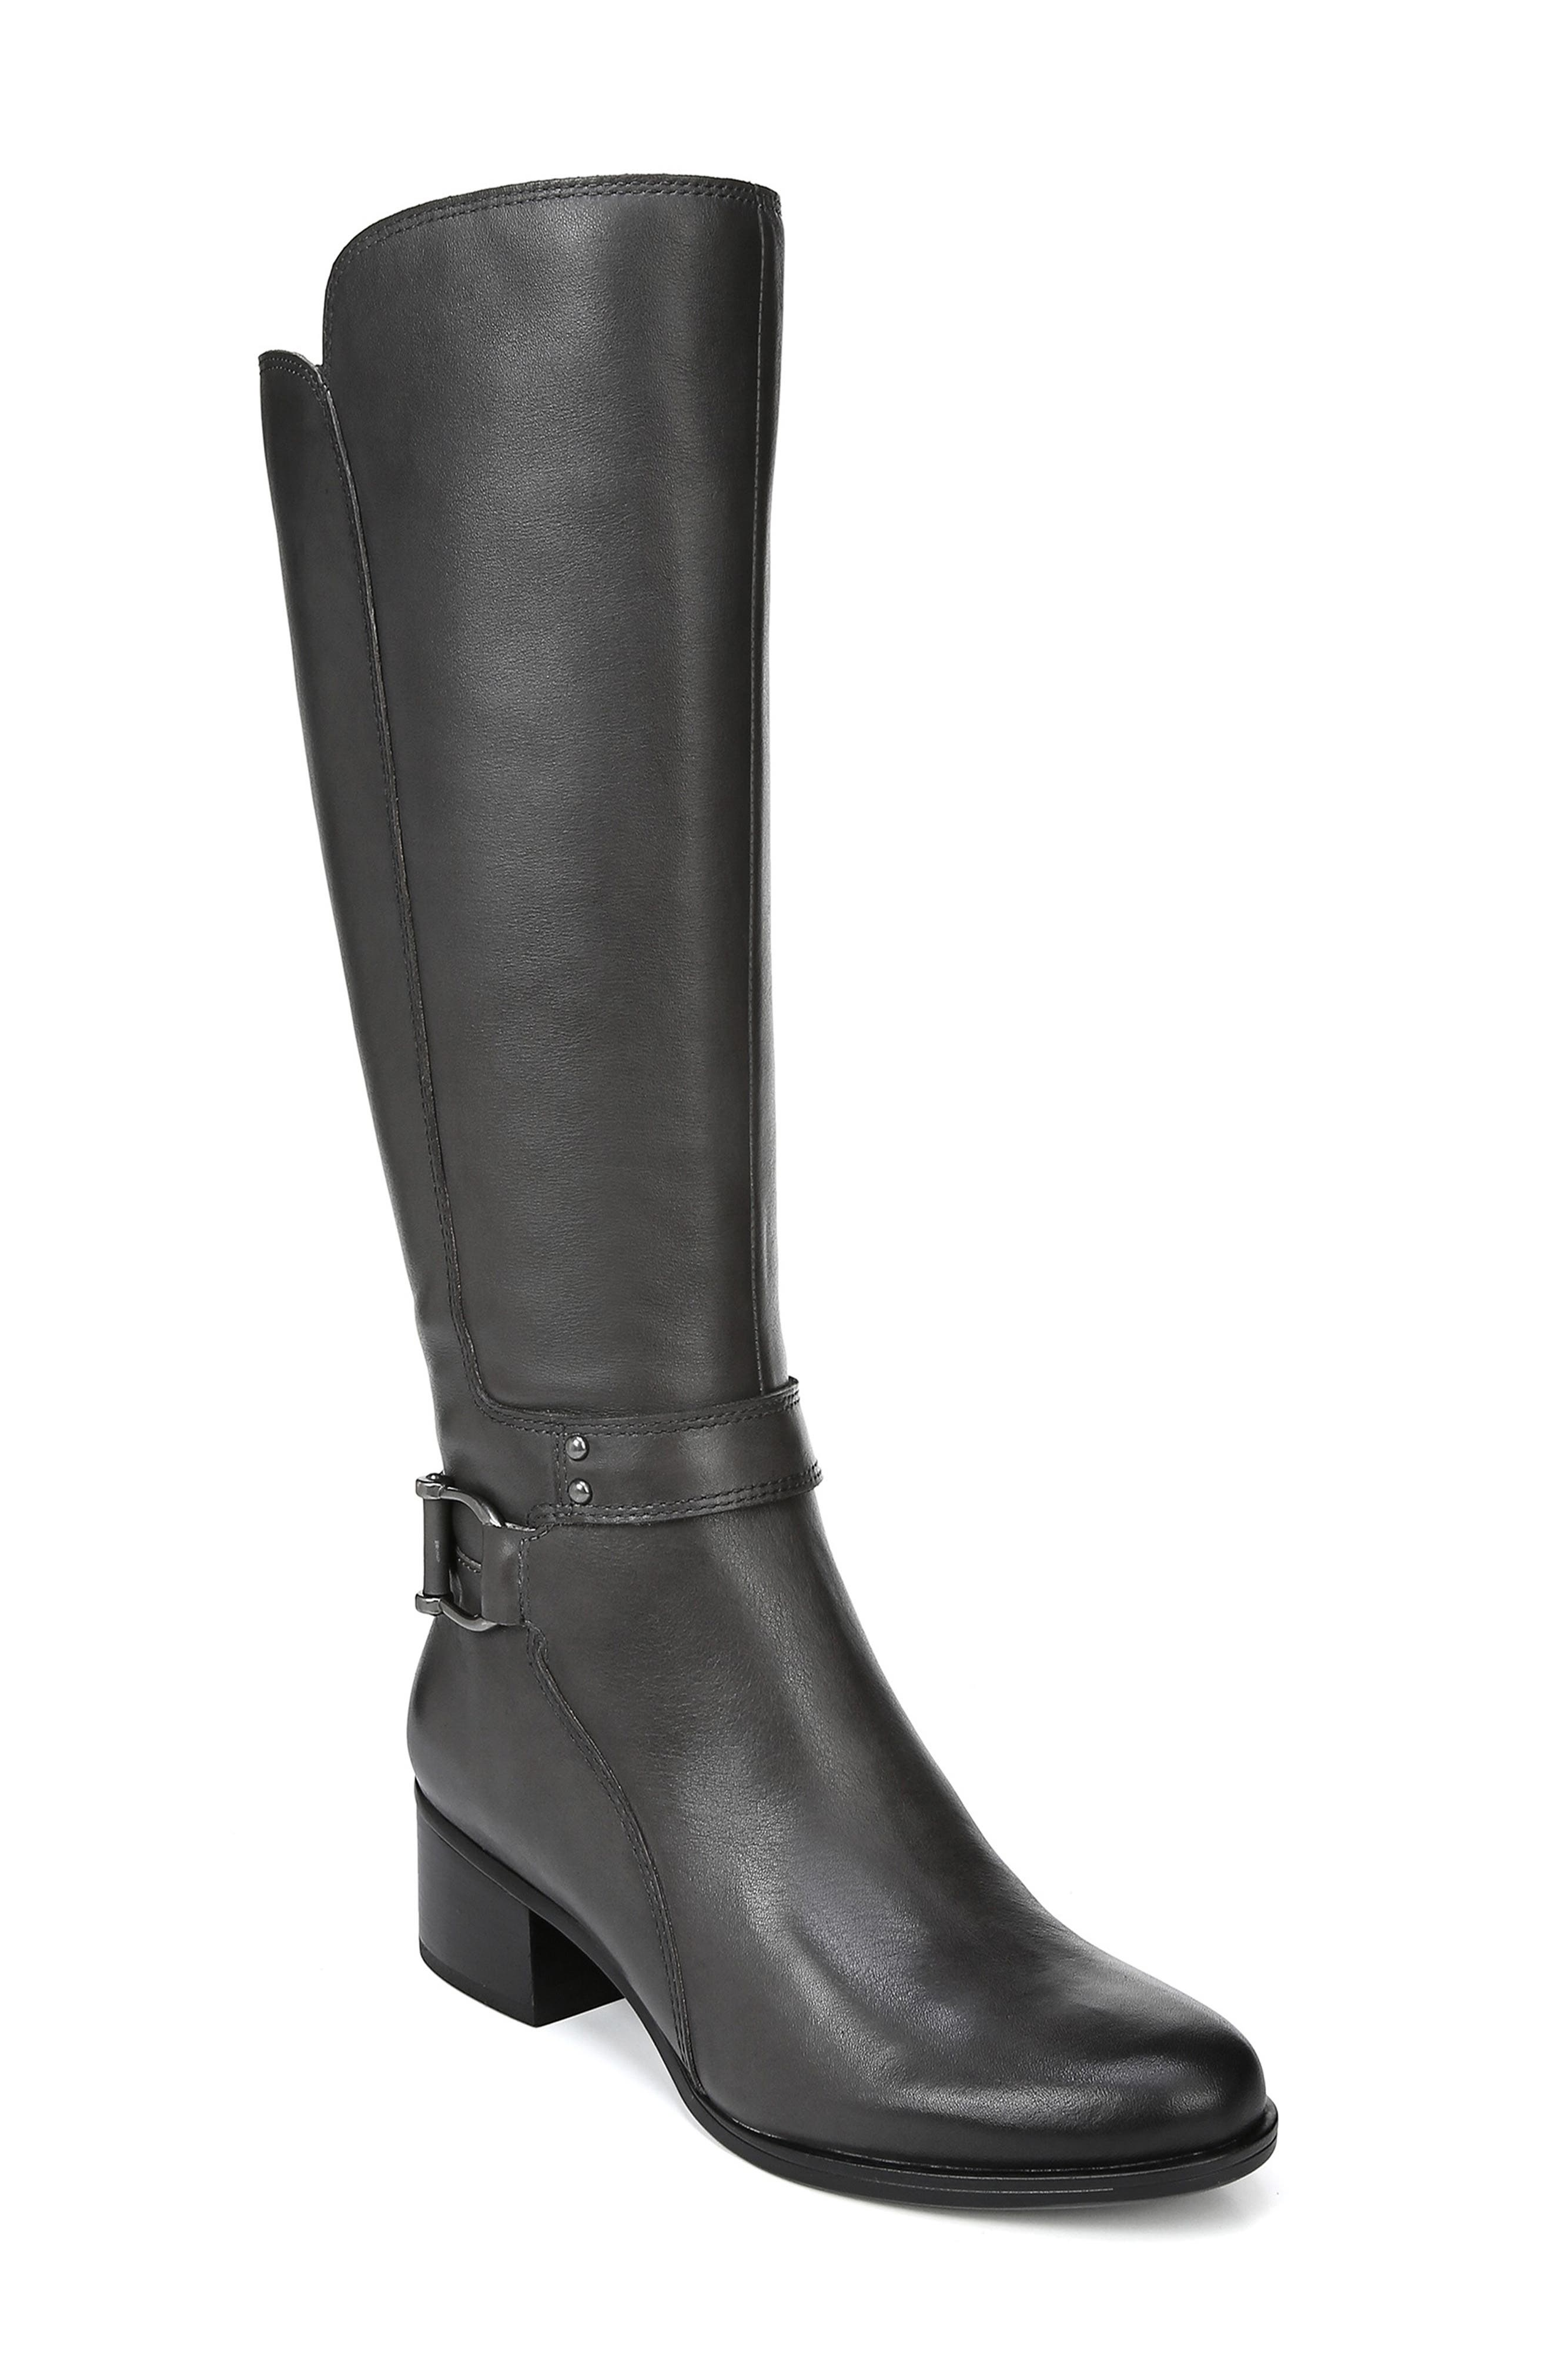 Dane Knee High Riding Boot,                             Main thumbnail 1, color,                             GREY LEATHER